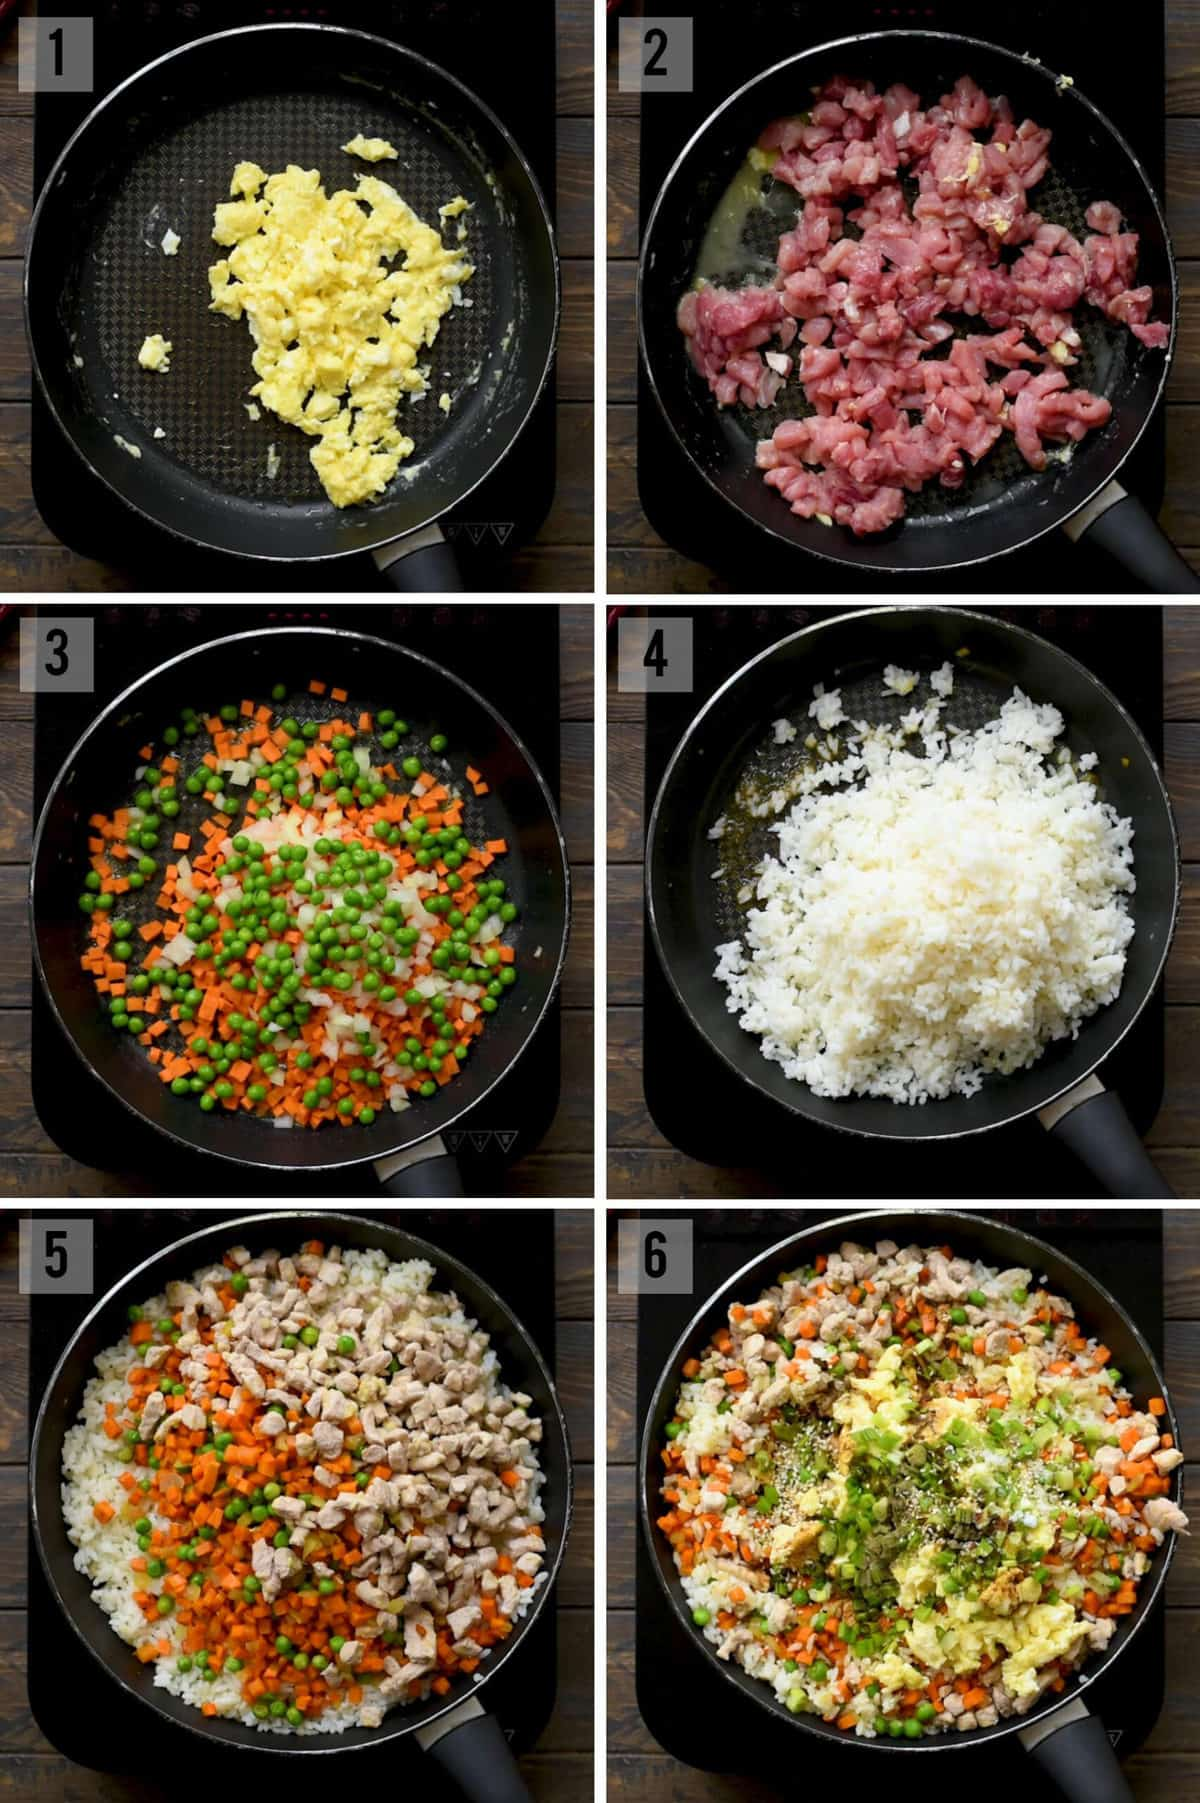 Step by step photos of how to make pork fried rice